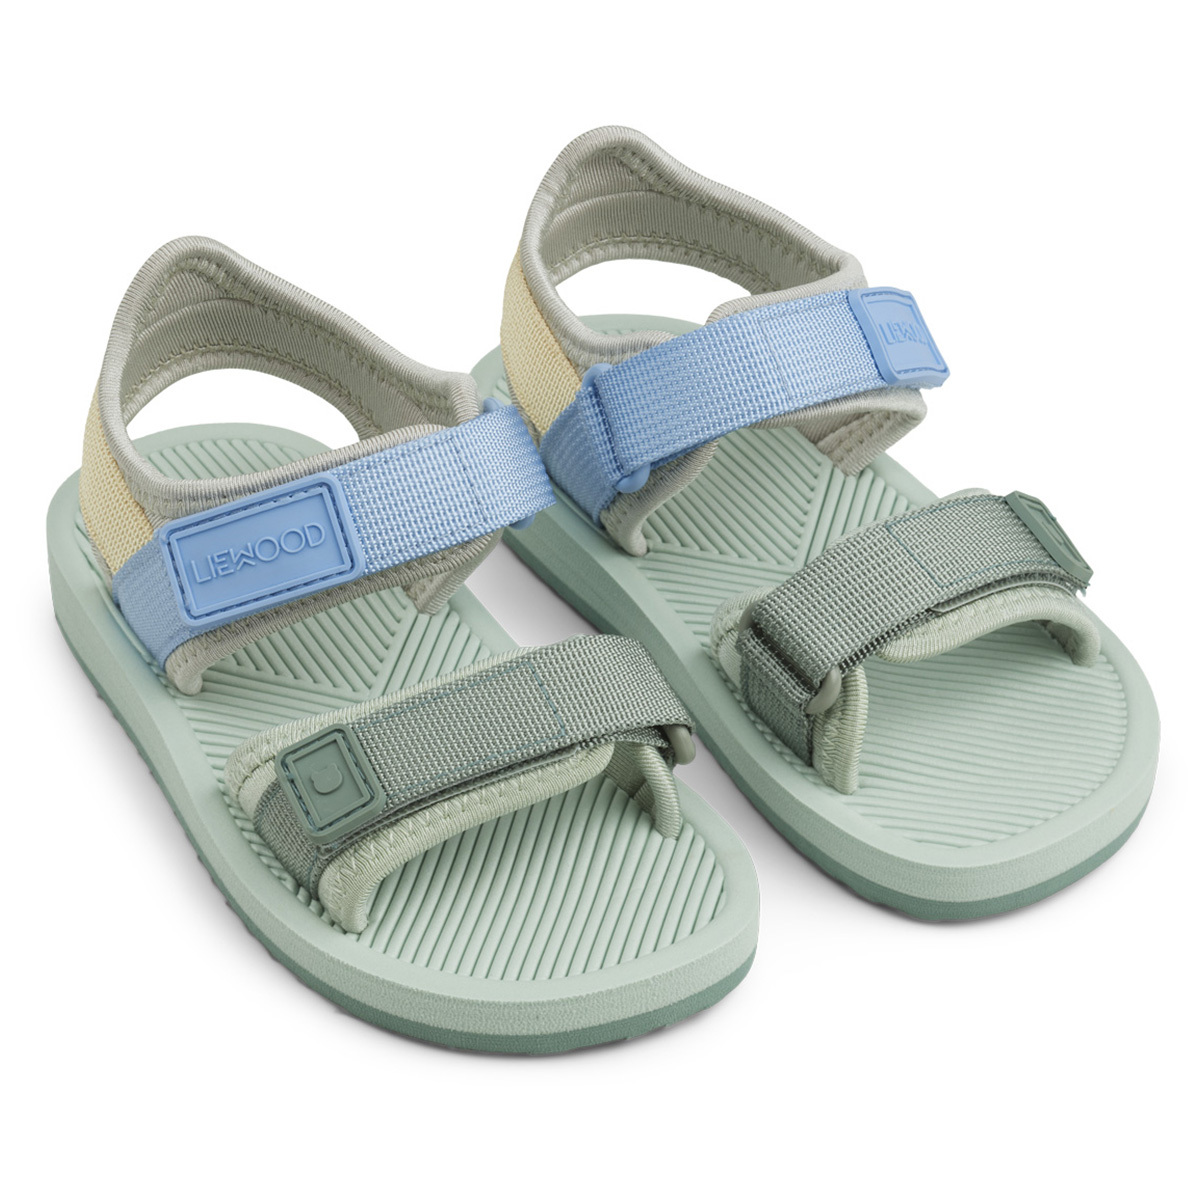 Chaussons & Chaussures Sandales Monty Dusty Mint Multi Mix - 26 Sandales Monty Dusty Mint Multi Mix - 26